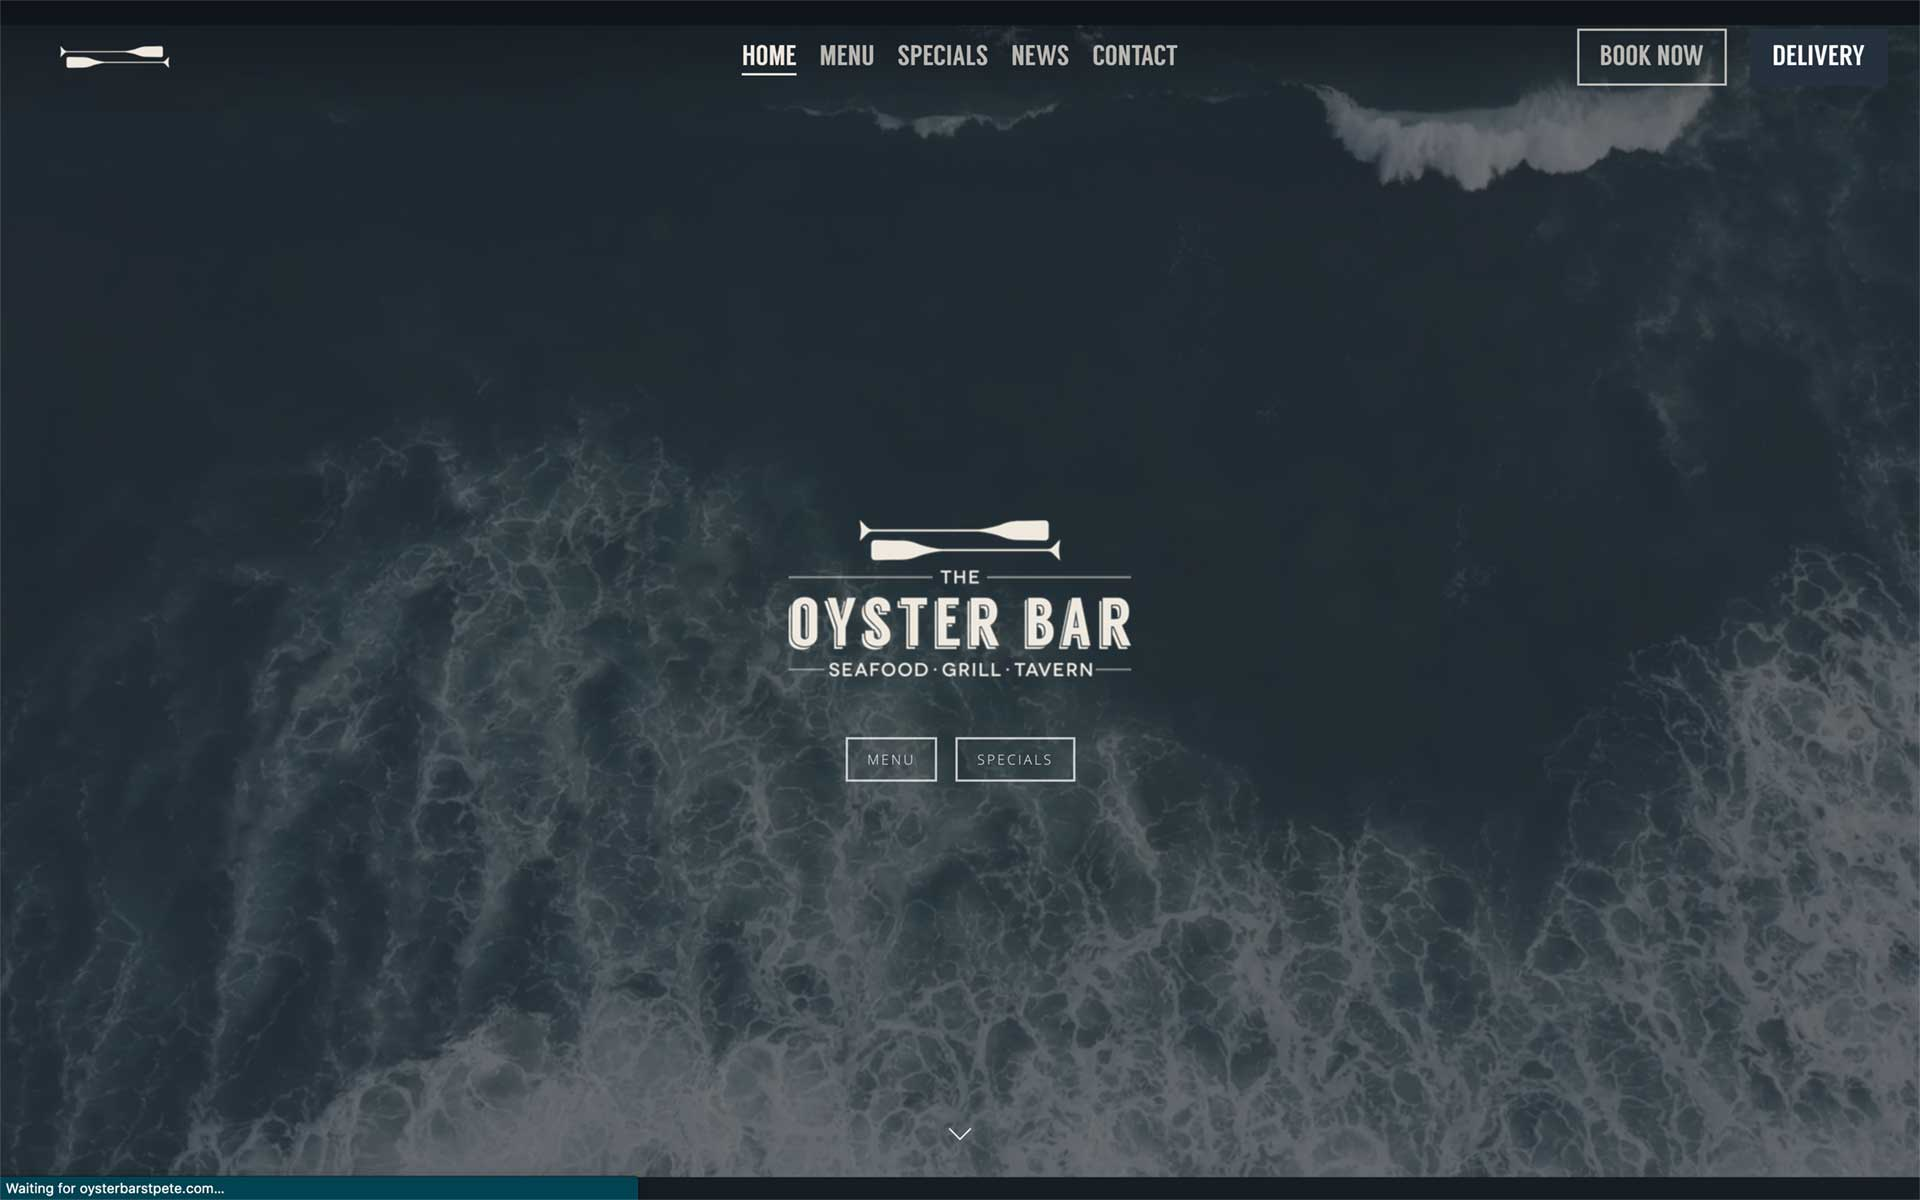 The Oyster Bar website